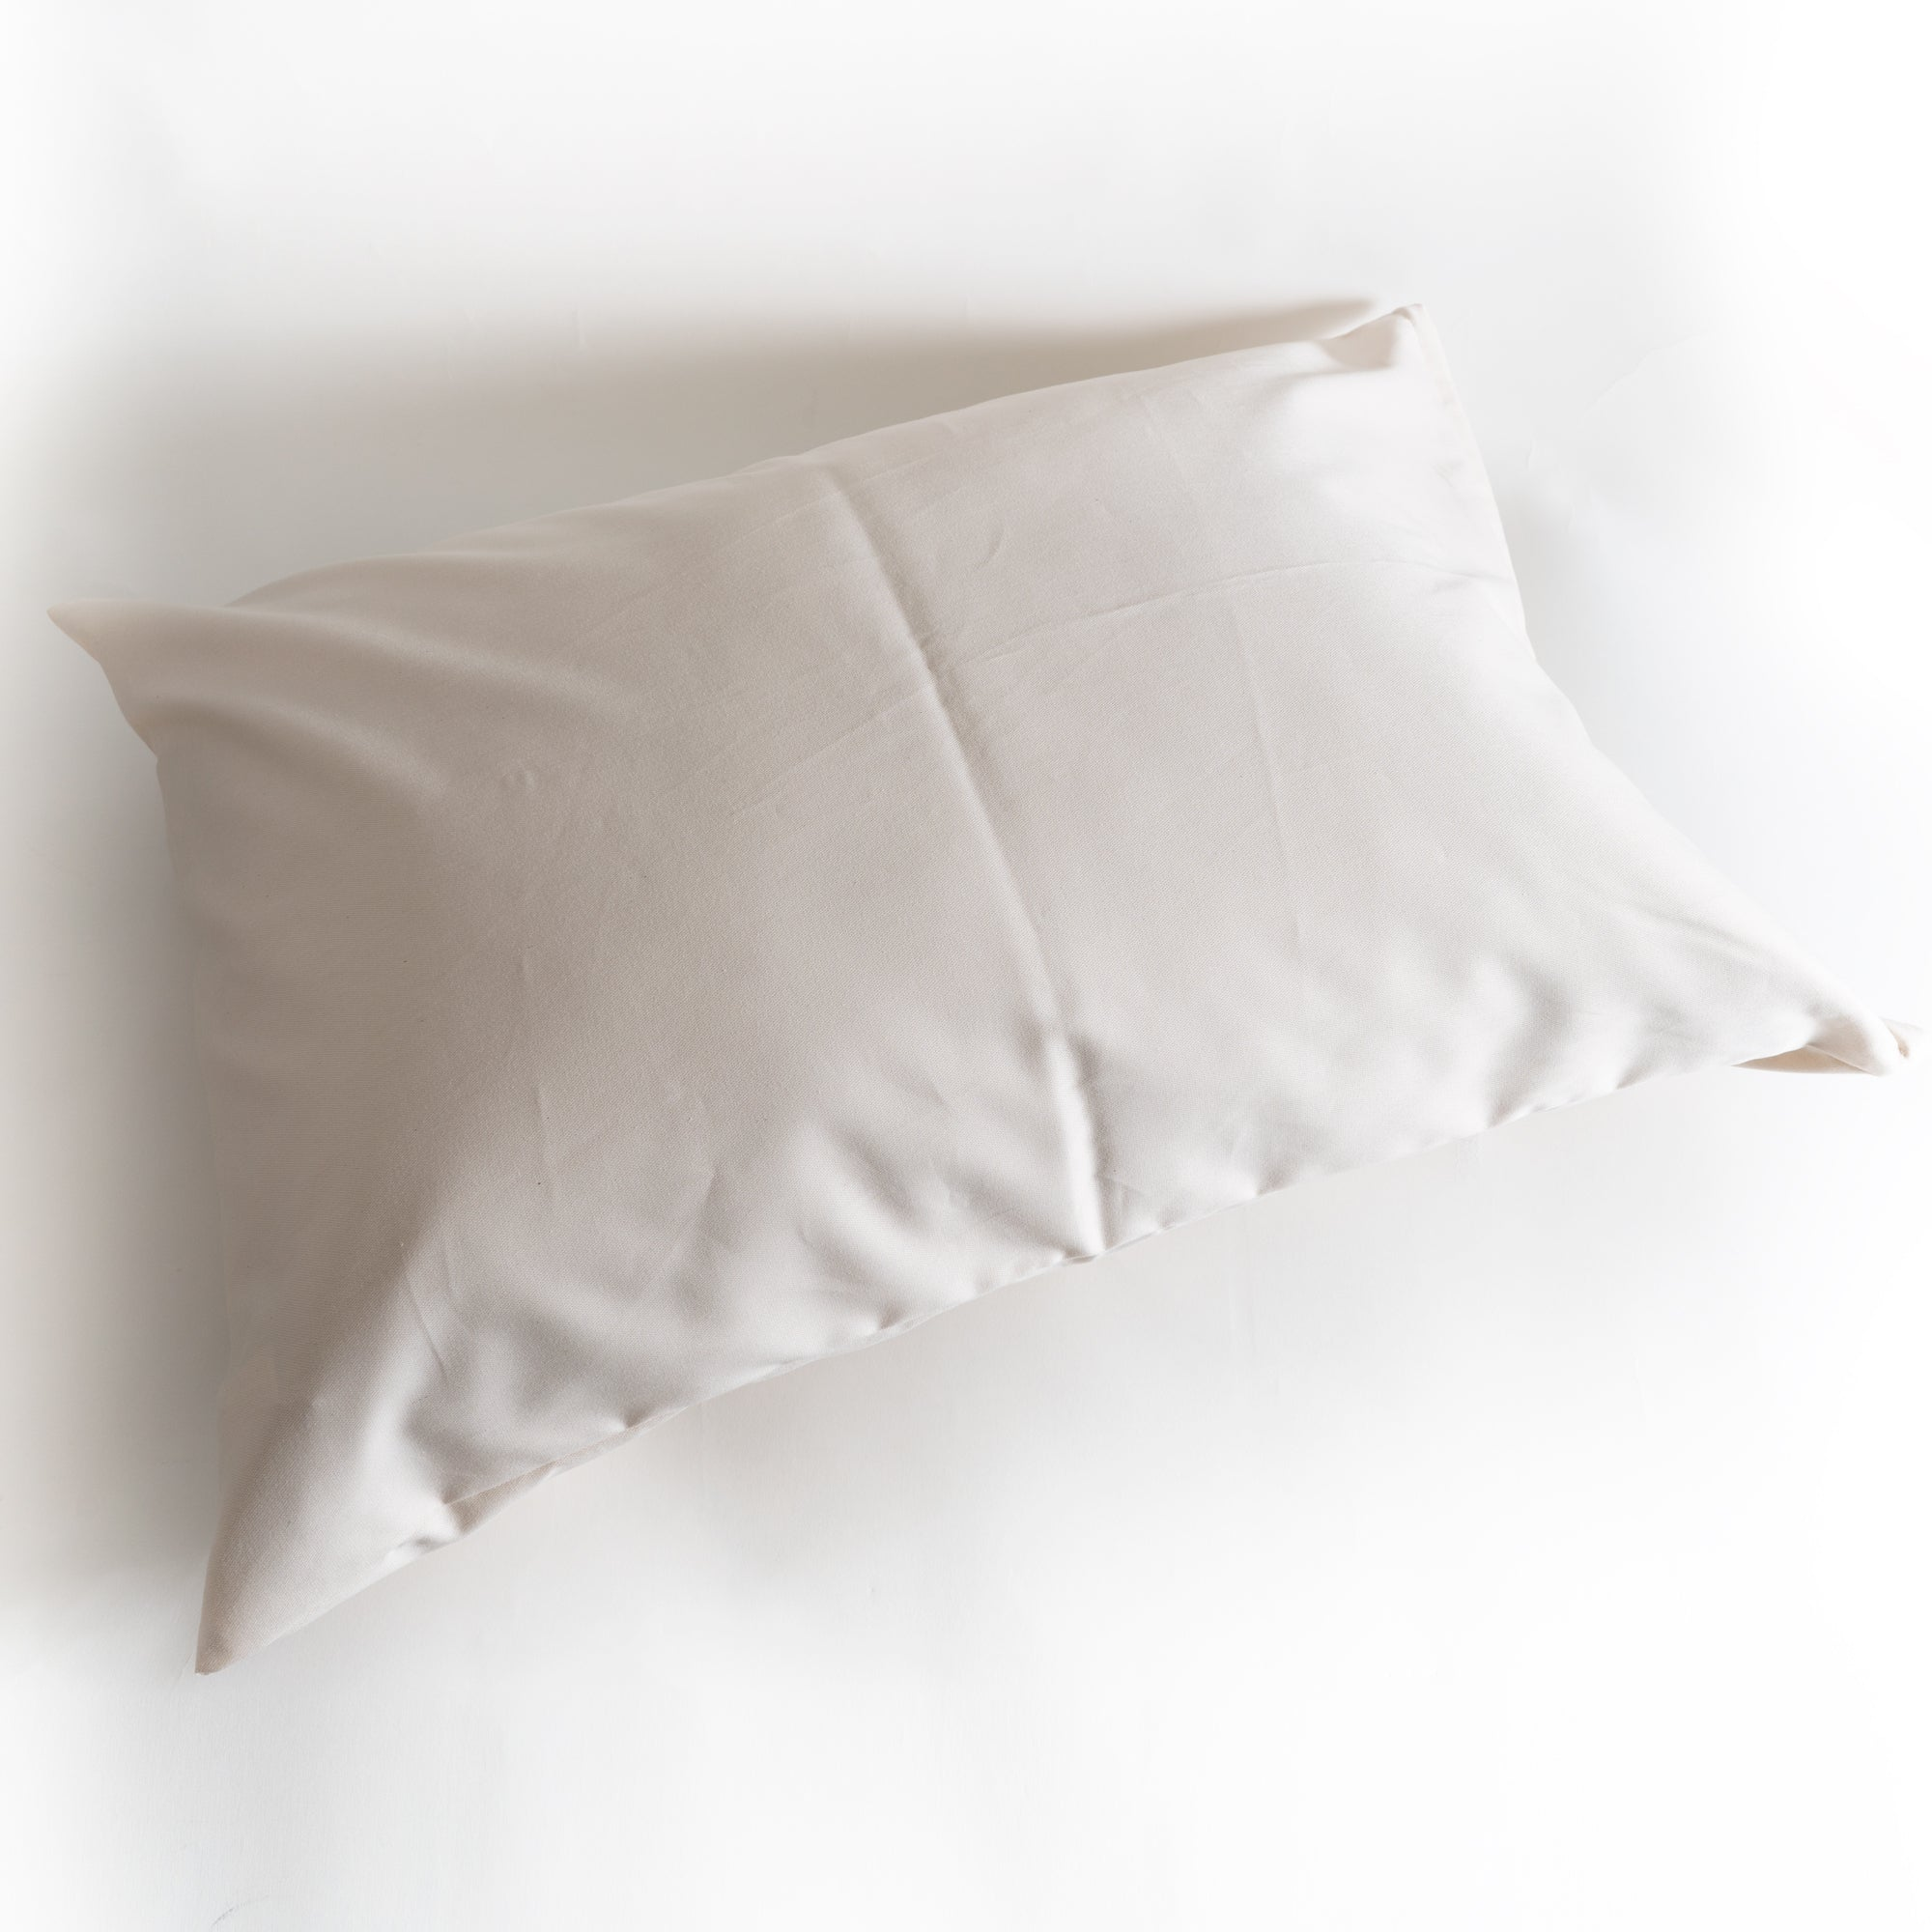 quality reviews pillow white design dog the of photos furniture sleeping pillows hd bed best excellent to wallpaper provide target